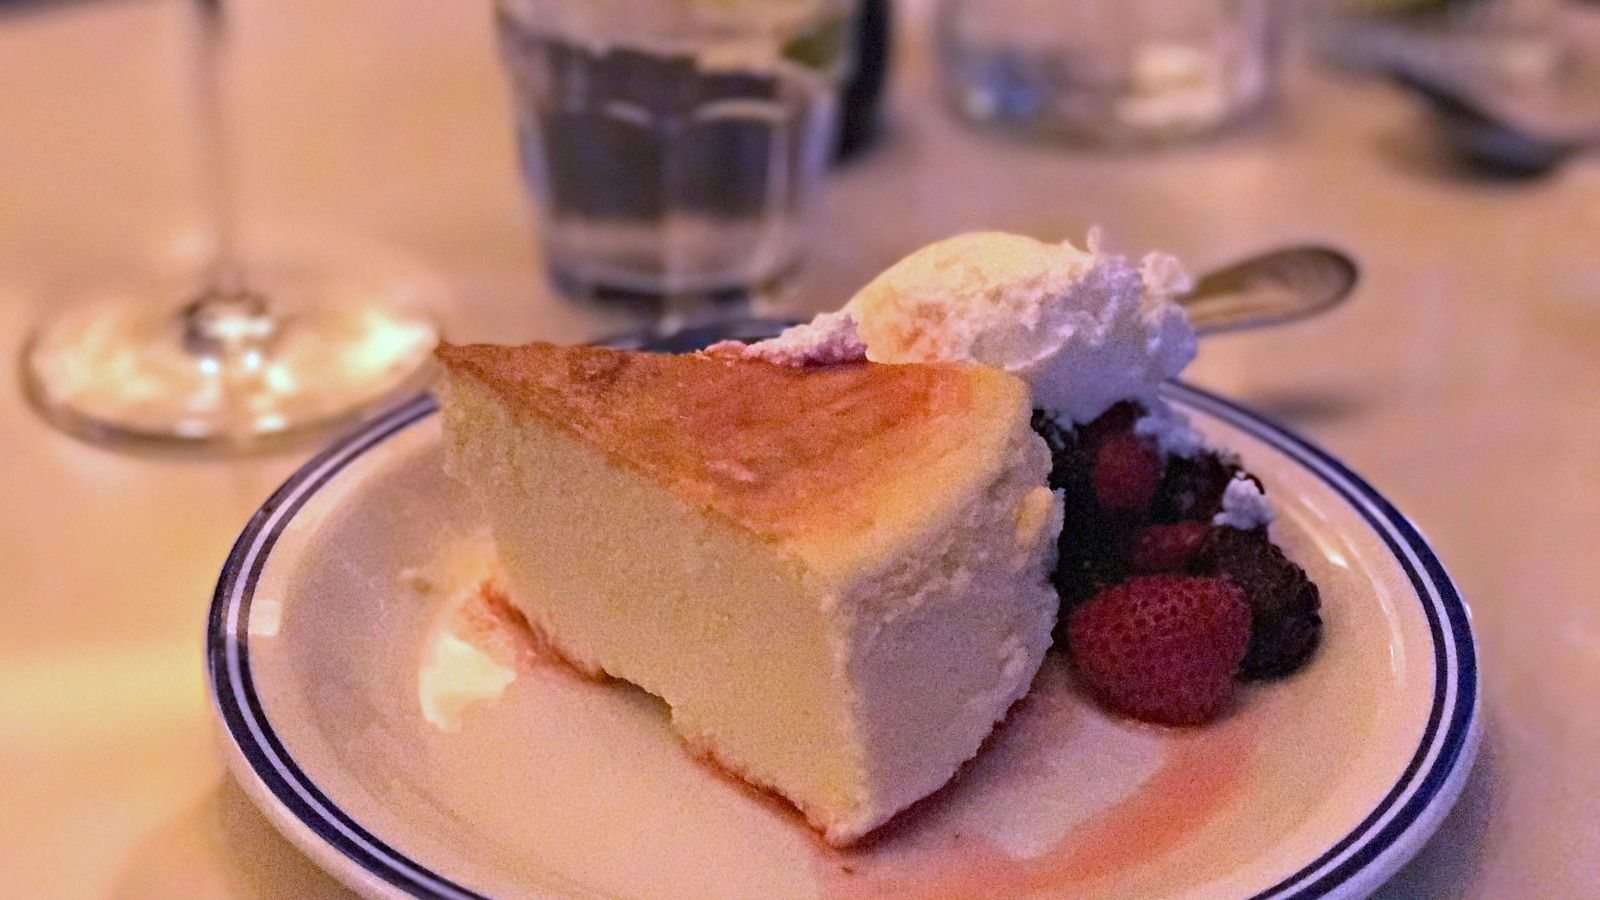 Balaboosta Bakes: Brett and Sam Nidel's mother, Arlene, makes a weekly dessert special, such as the cheesecake here.